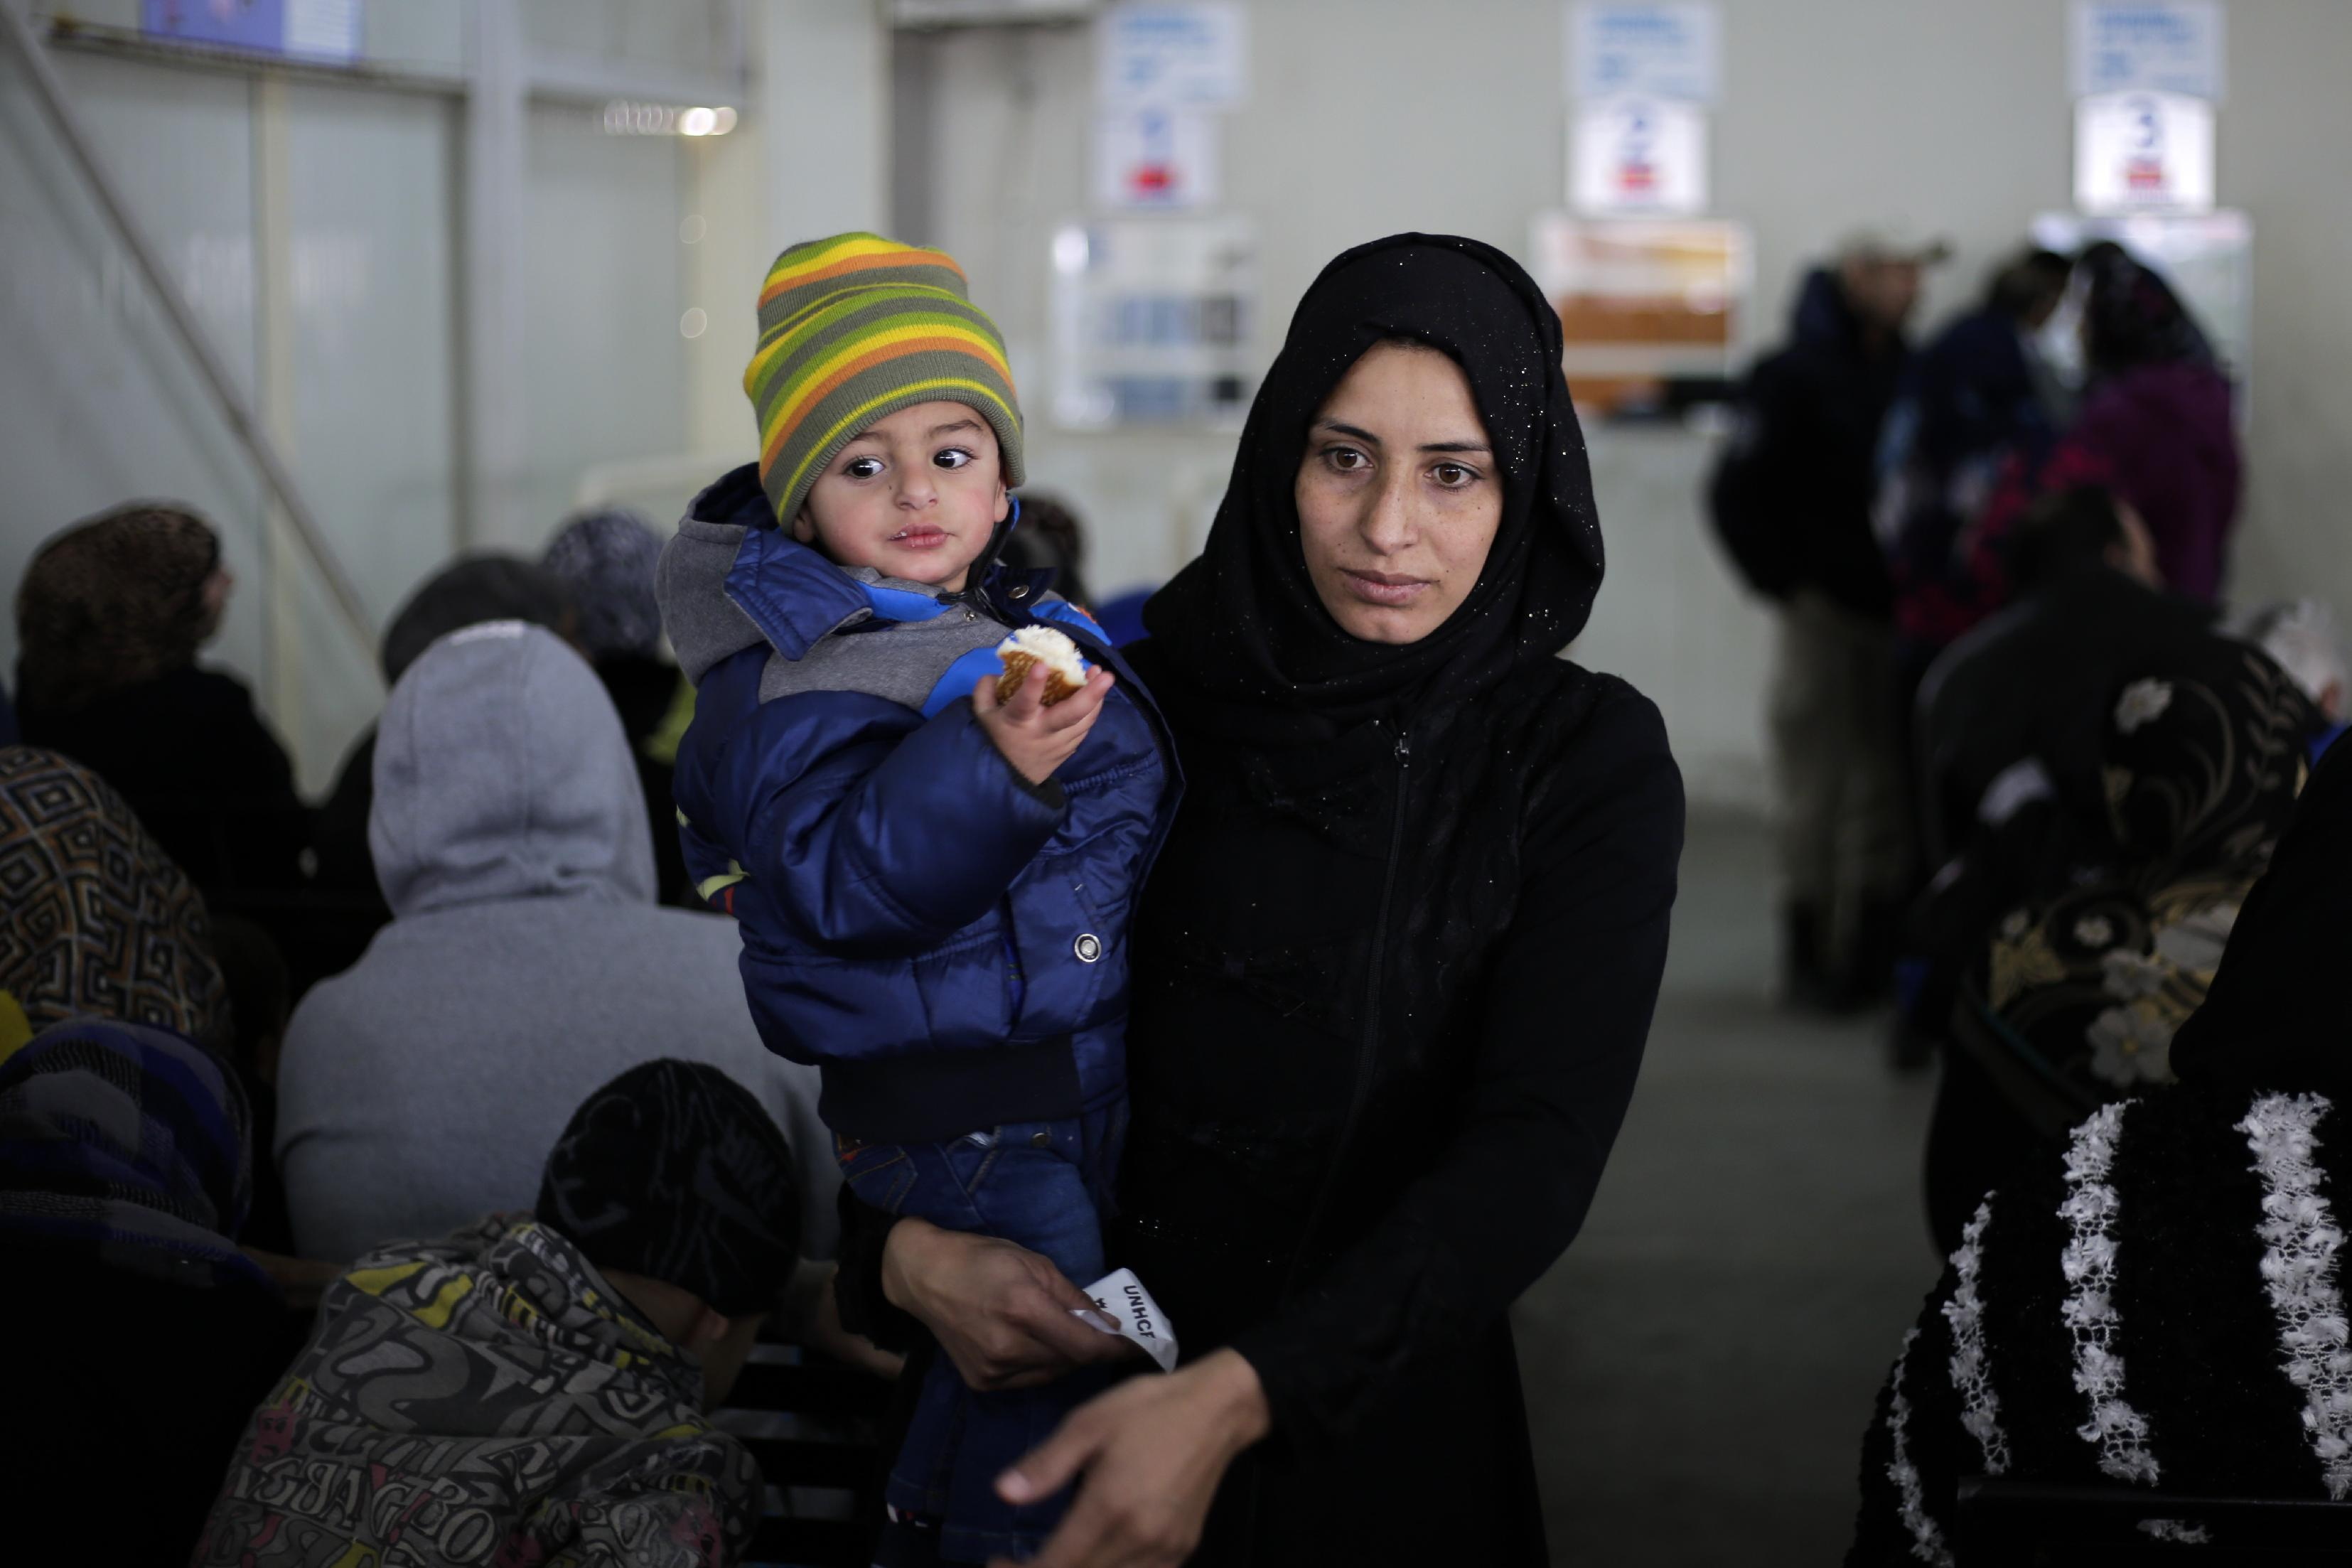 A Syrian boy eats bread as waits in line with his mother as hundred of Syrian families wait to register at the United Nations High Commissioner for Refugees headquarters, in Beirut, Lebanon, Monday, Jan. 30, 2017. By executive order, U.S. President Donald Trump imposed a 90-day ban, Friday, that affects travel to the U.S. by citizens of Iraq, Syria, Iran, Sudan, Libya, Somalia and Yemen and puts an indefinite hold on a program resettling Syrian refugees. (AP Photo/Hassan Ammar)